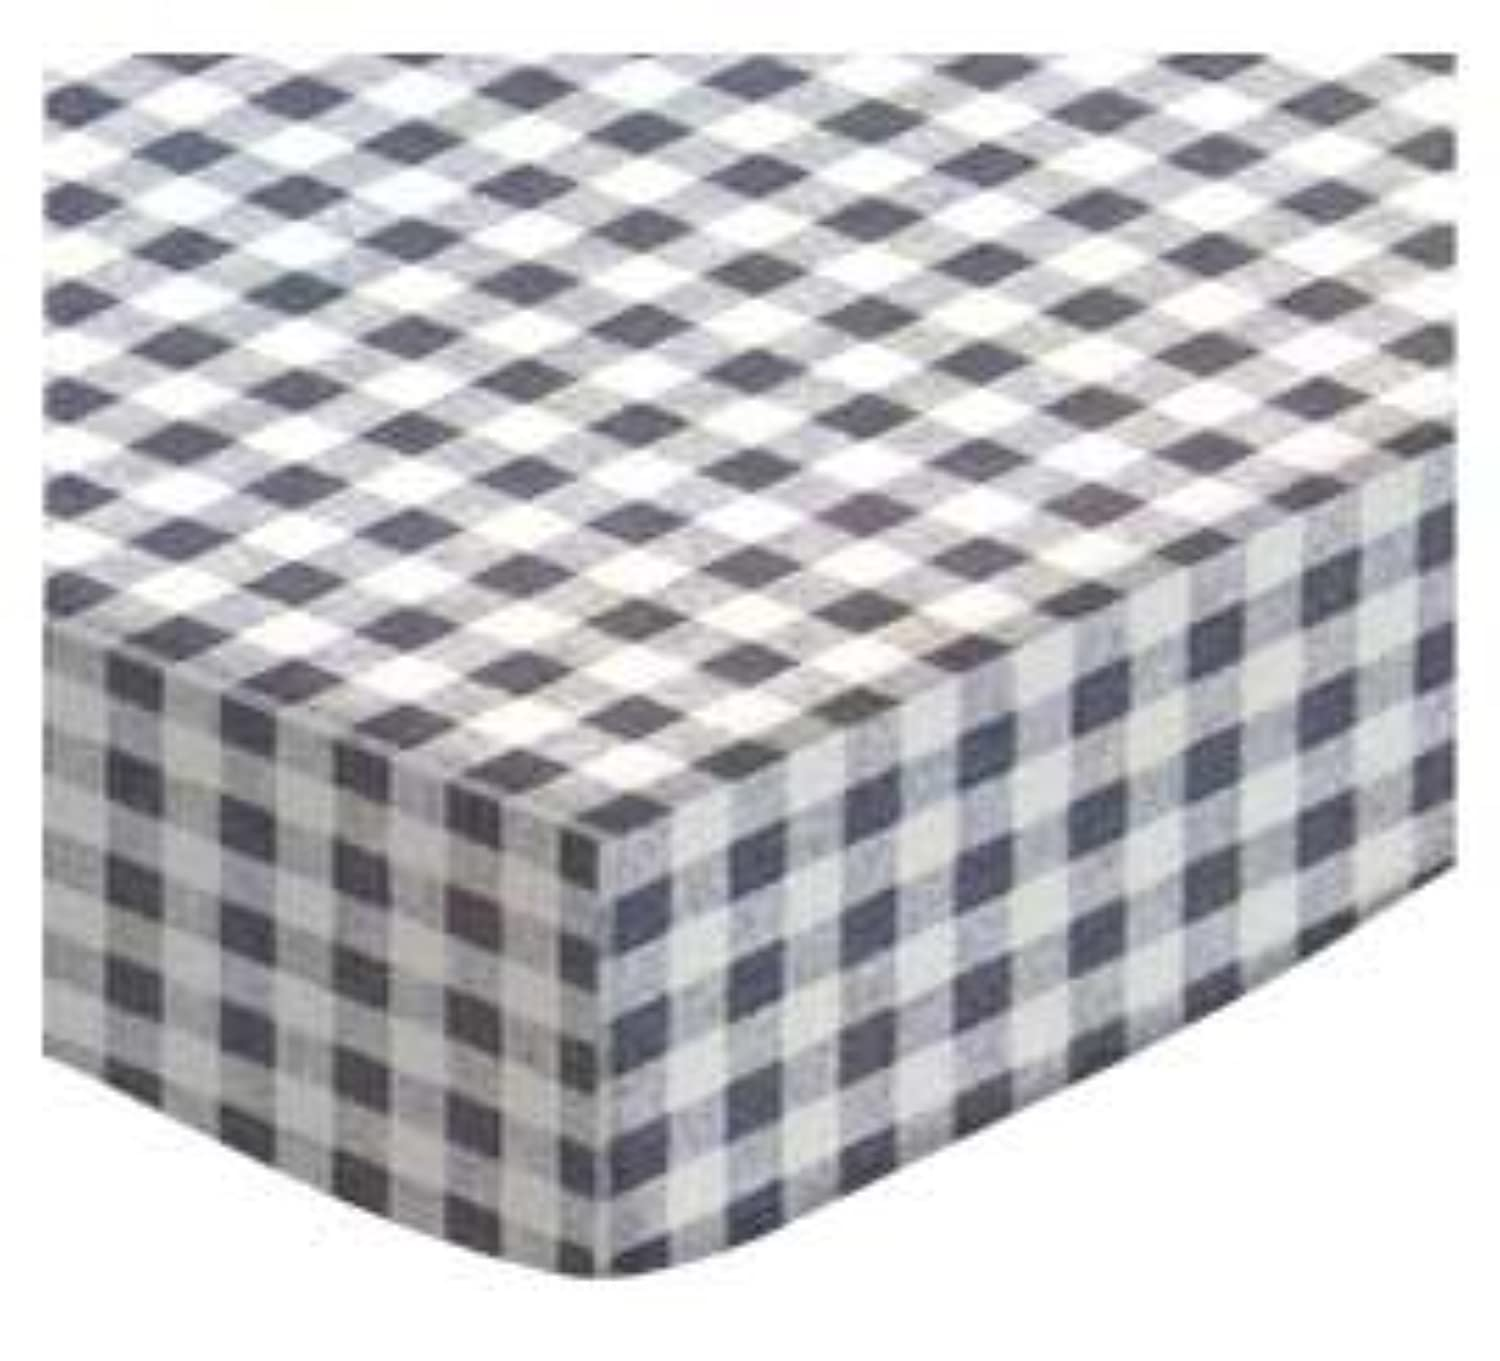 SheetWorld Fitted Square Playard Sheet 37.5 x 37.5 (Fits Joovy) - Grey Gingham Check - Made In USA by sheetworld